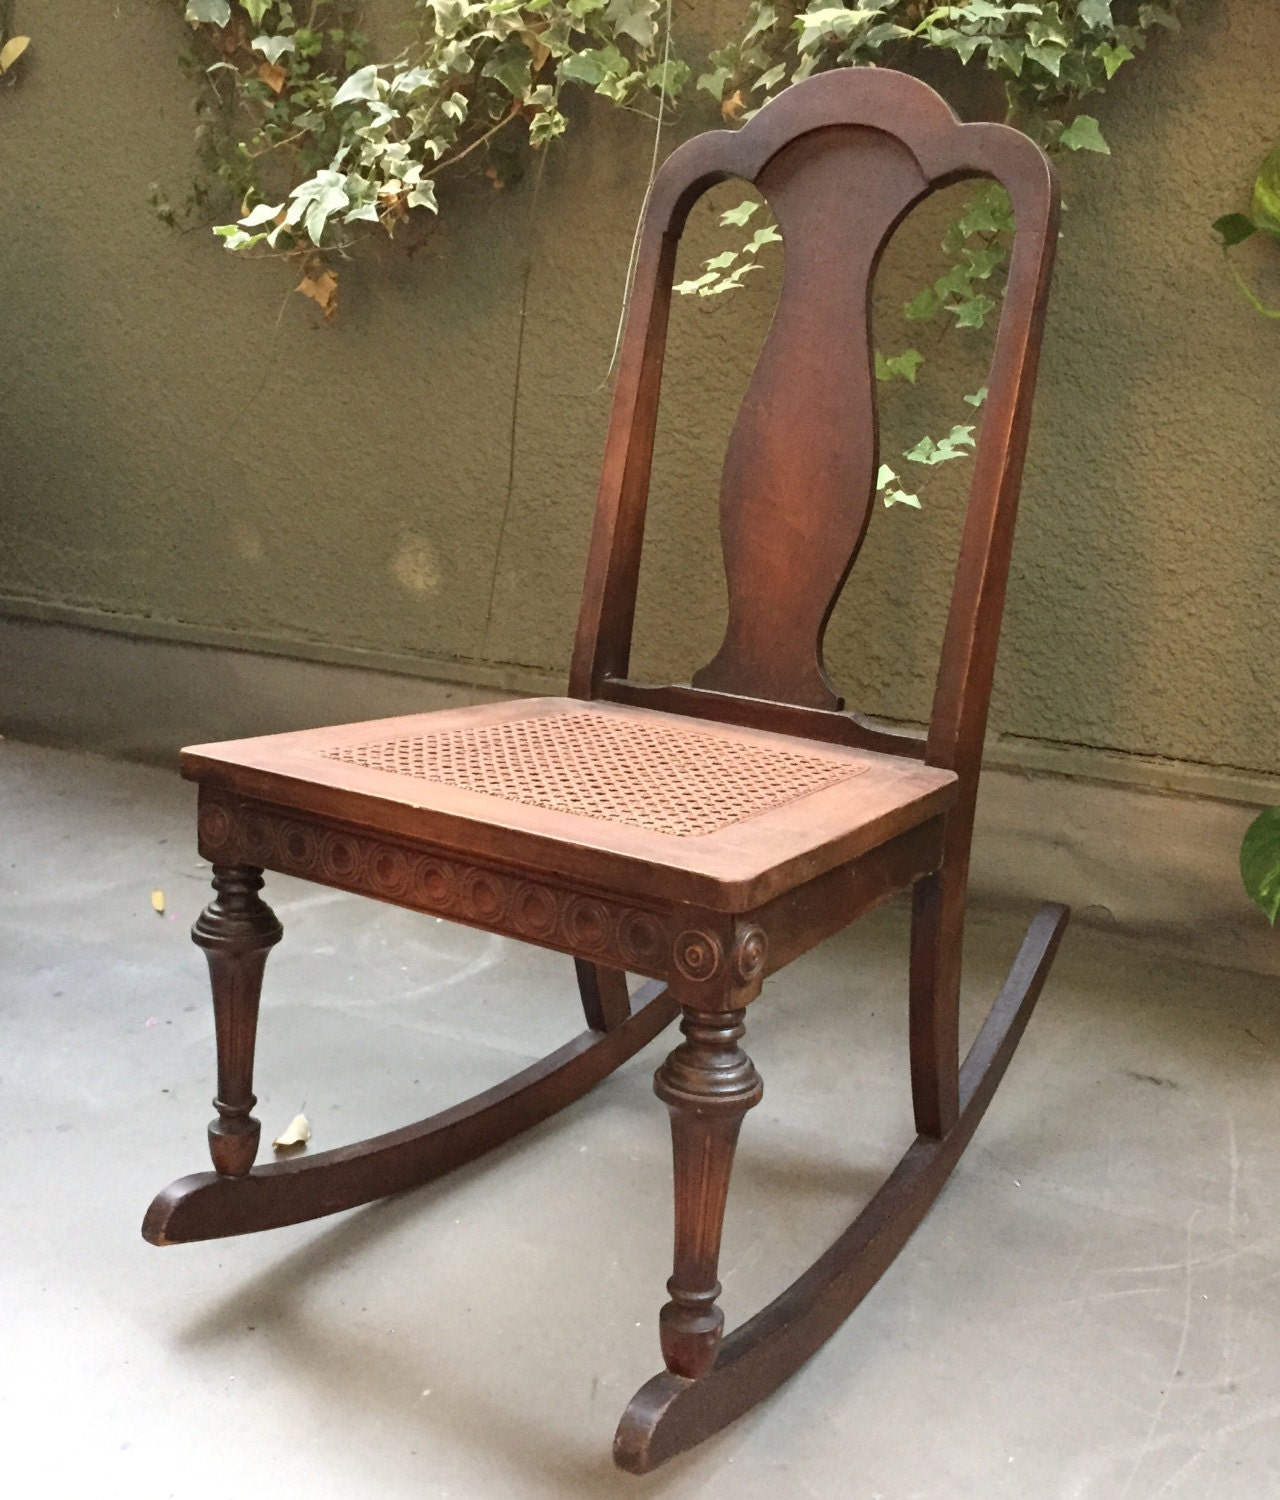 Vintage cane rocking chair - Very Impressive Portraiture Of Antique Cane Rocking Chair Vintage Rocking By Kathrynsfurniture With 8c6040 Color